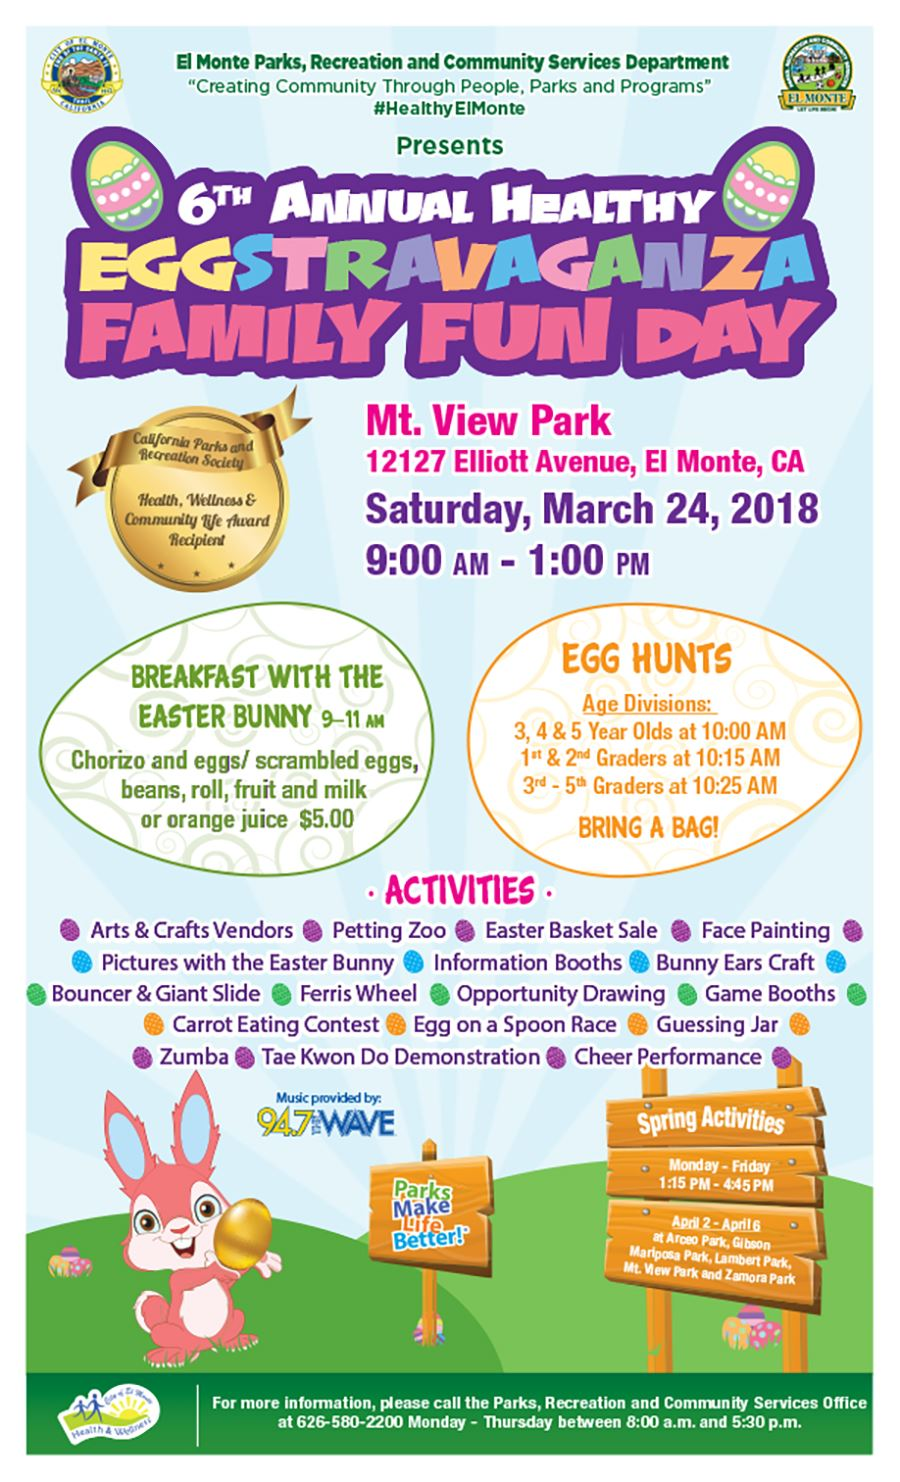 2018_Eggstravaganza_Fun_Day_Flyer_English